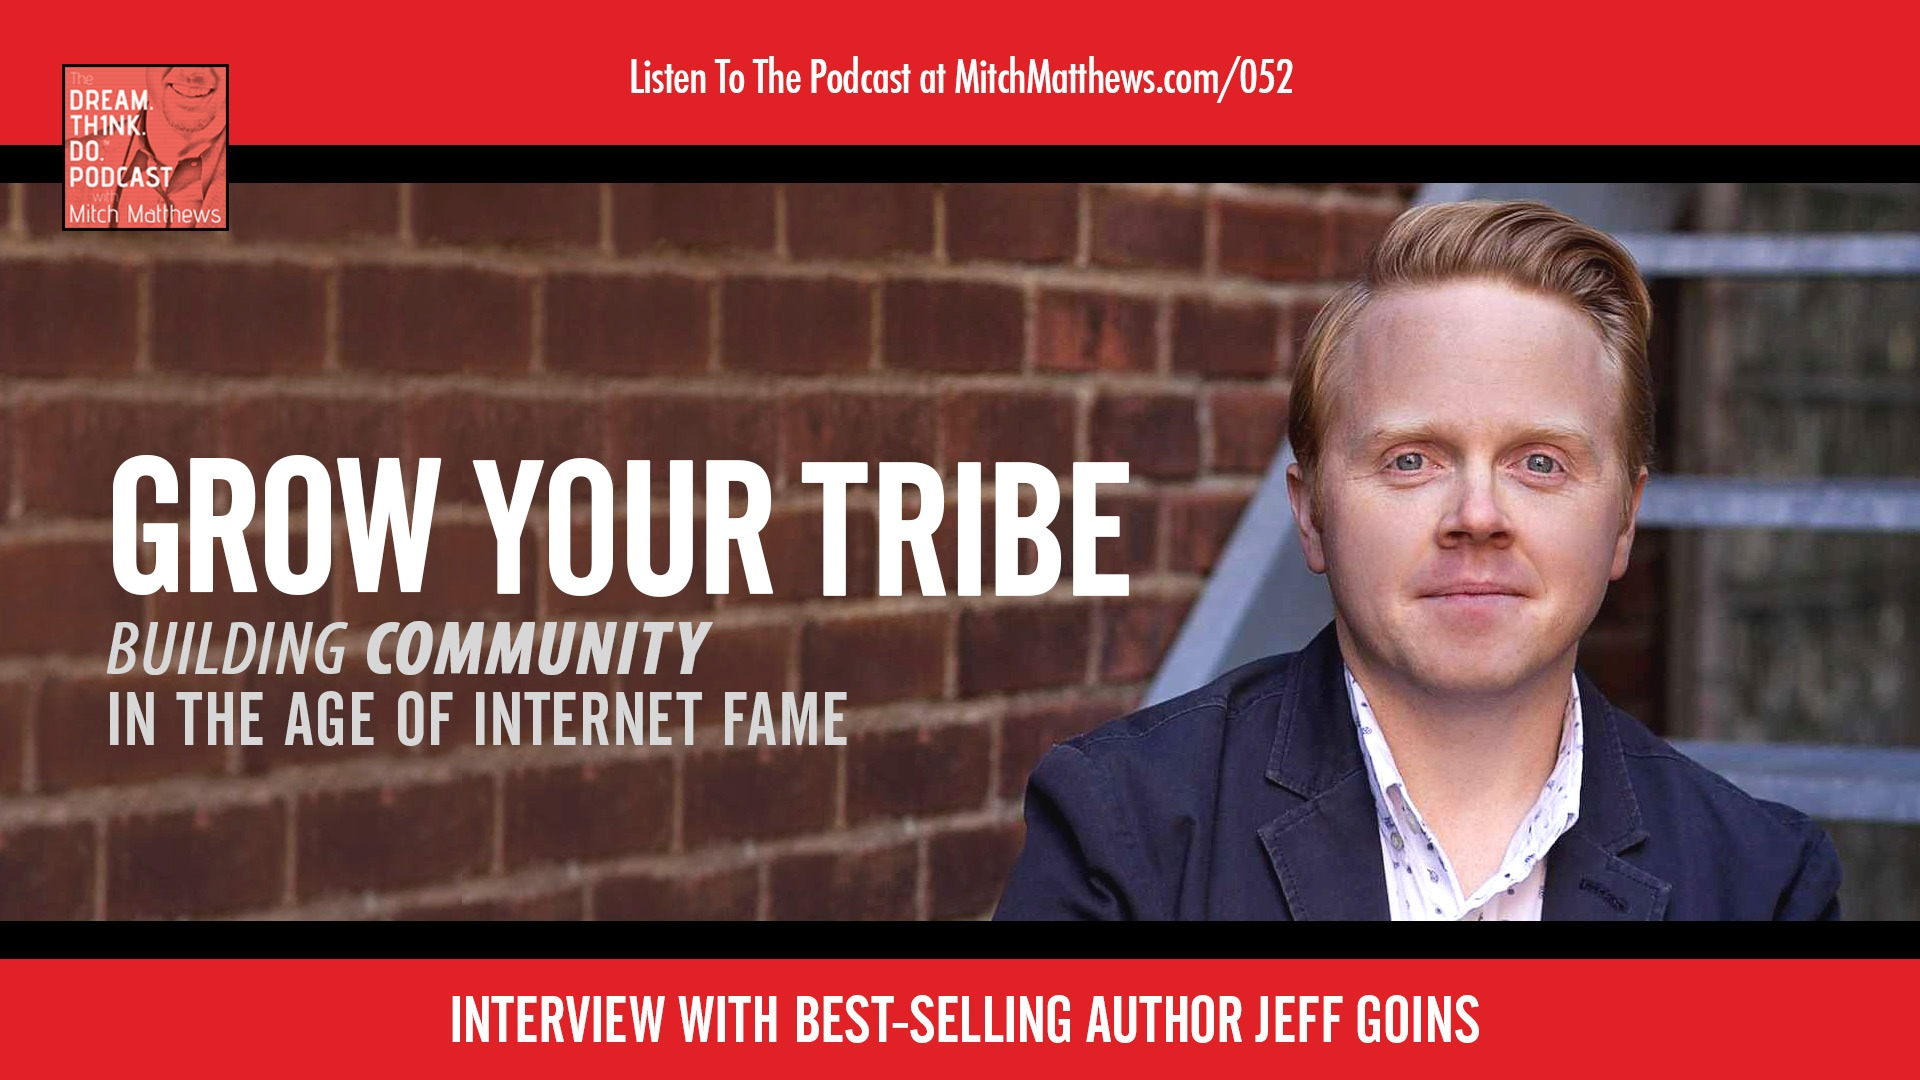 Jeff Goins | Grow Your Tribe: Building Community in the Age of Internet Fame